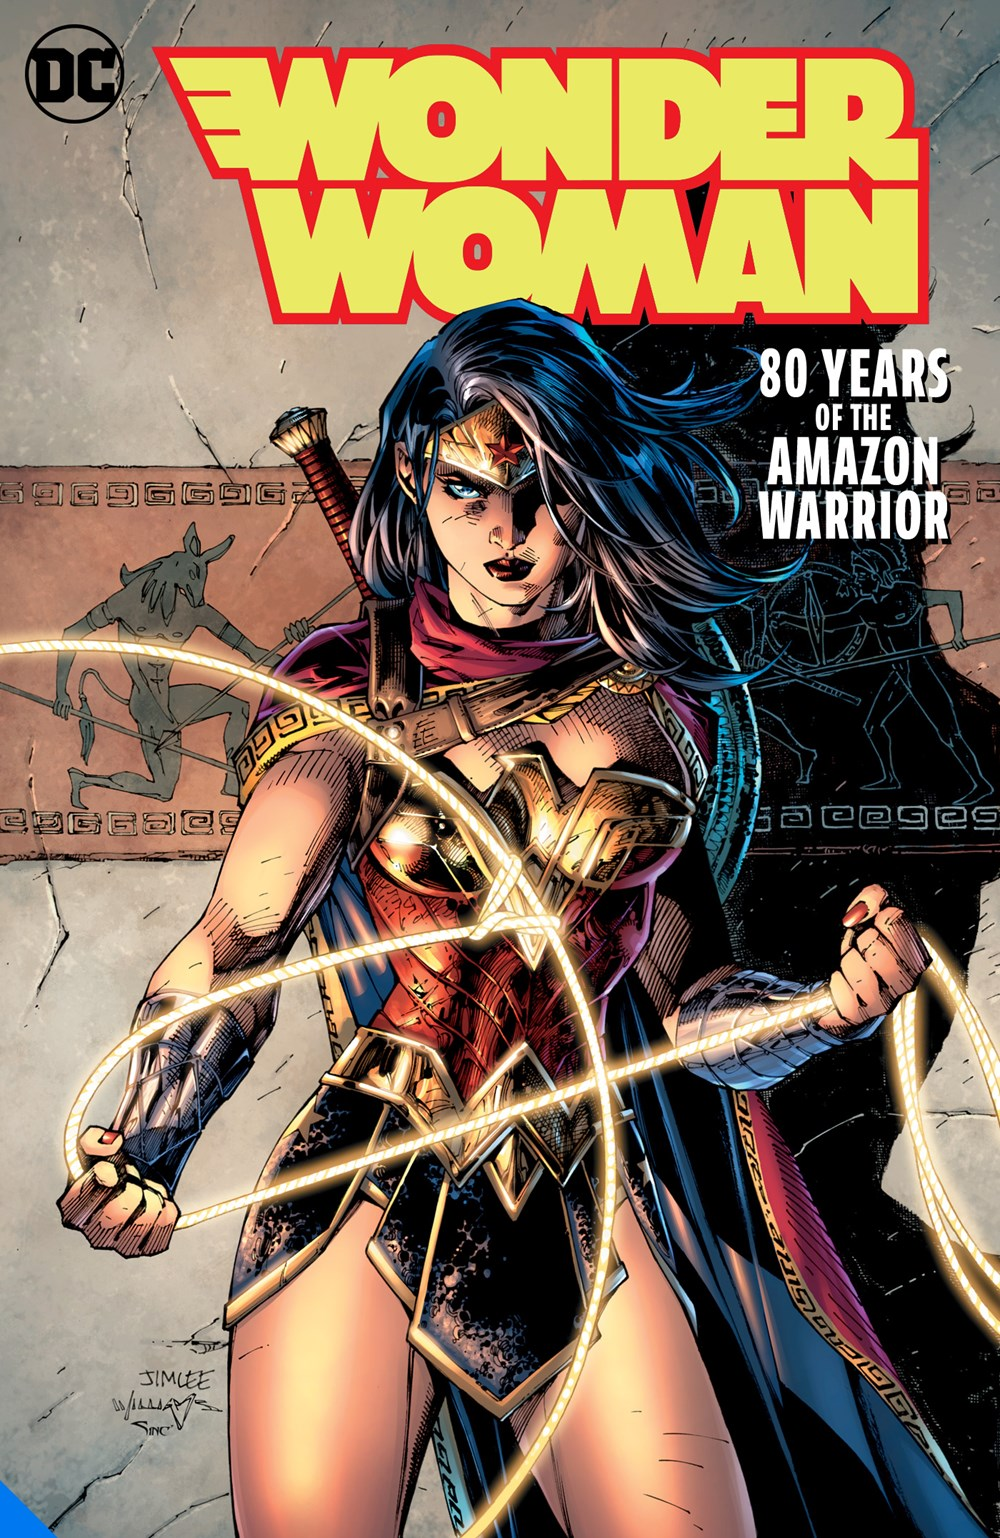 Wonder Woman: 80 Years of the Amazon Warrior the Deluxe Edition